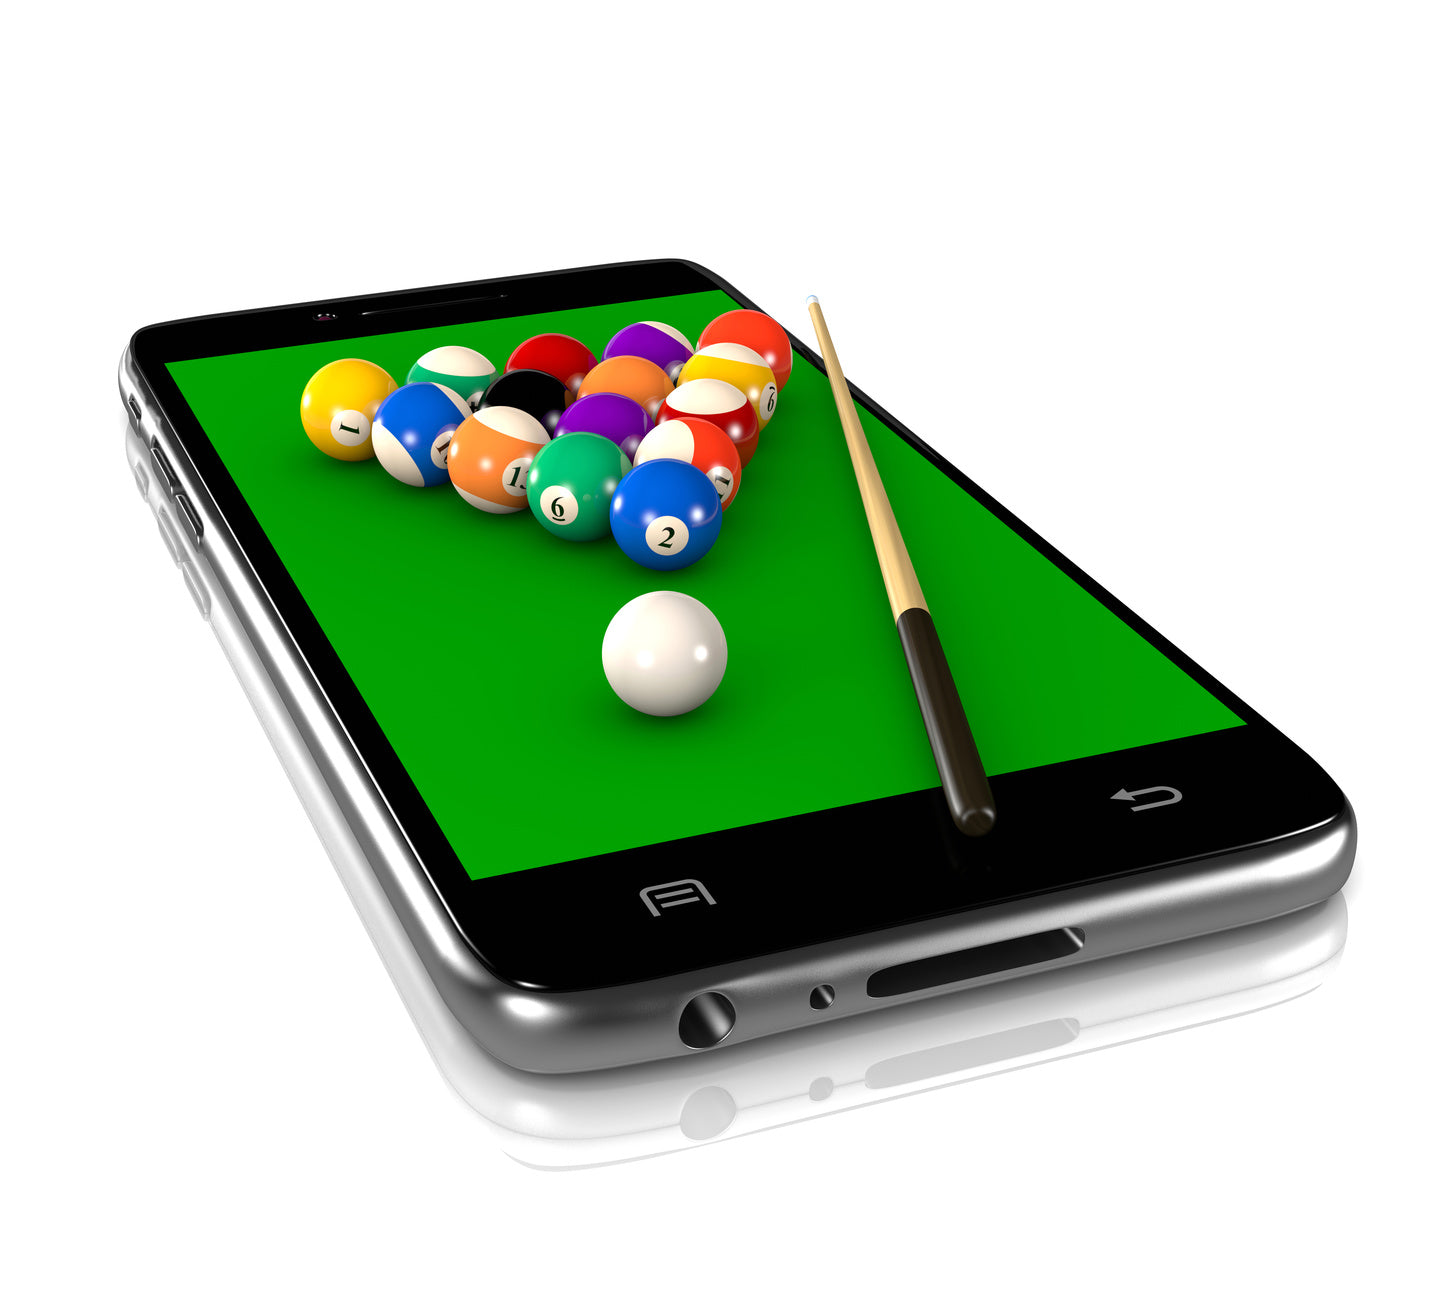 Billiard Phone Applications